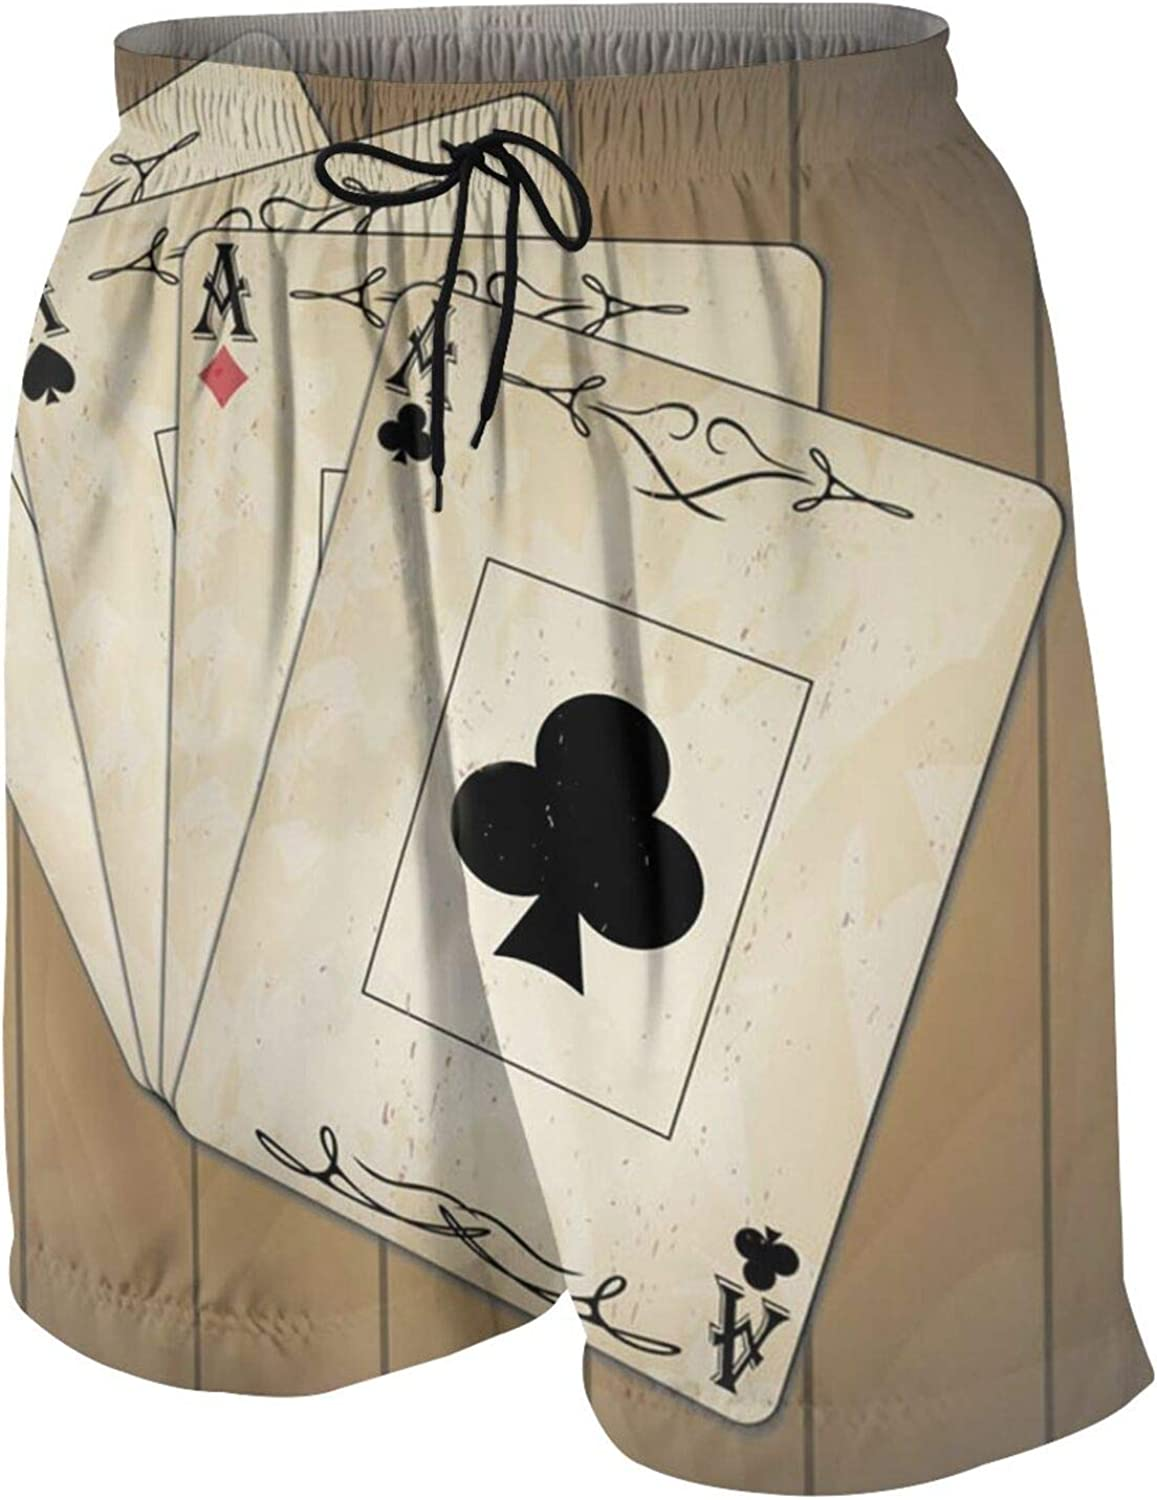 Teen Boys Poker Cards Ace of Spades Hearts Swim Trunks Quick Dry Swimwear Bathing Suit with Mesh Lining